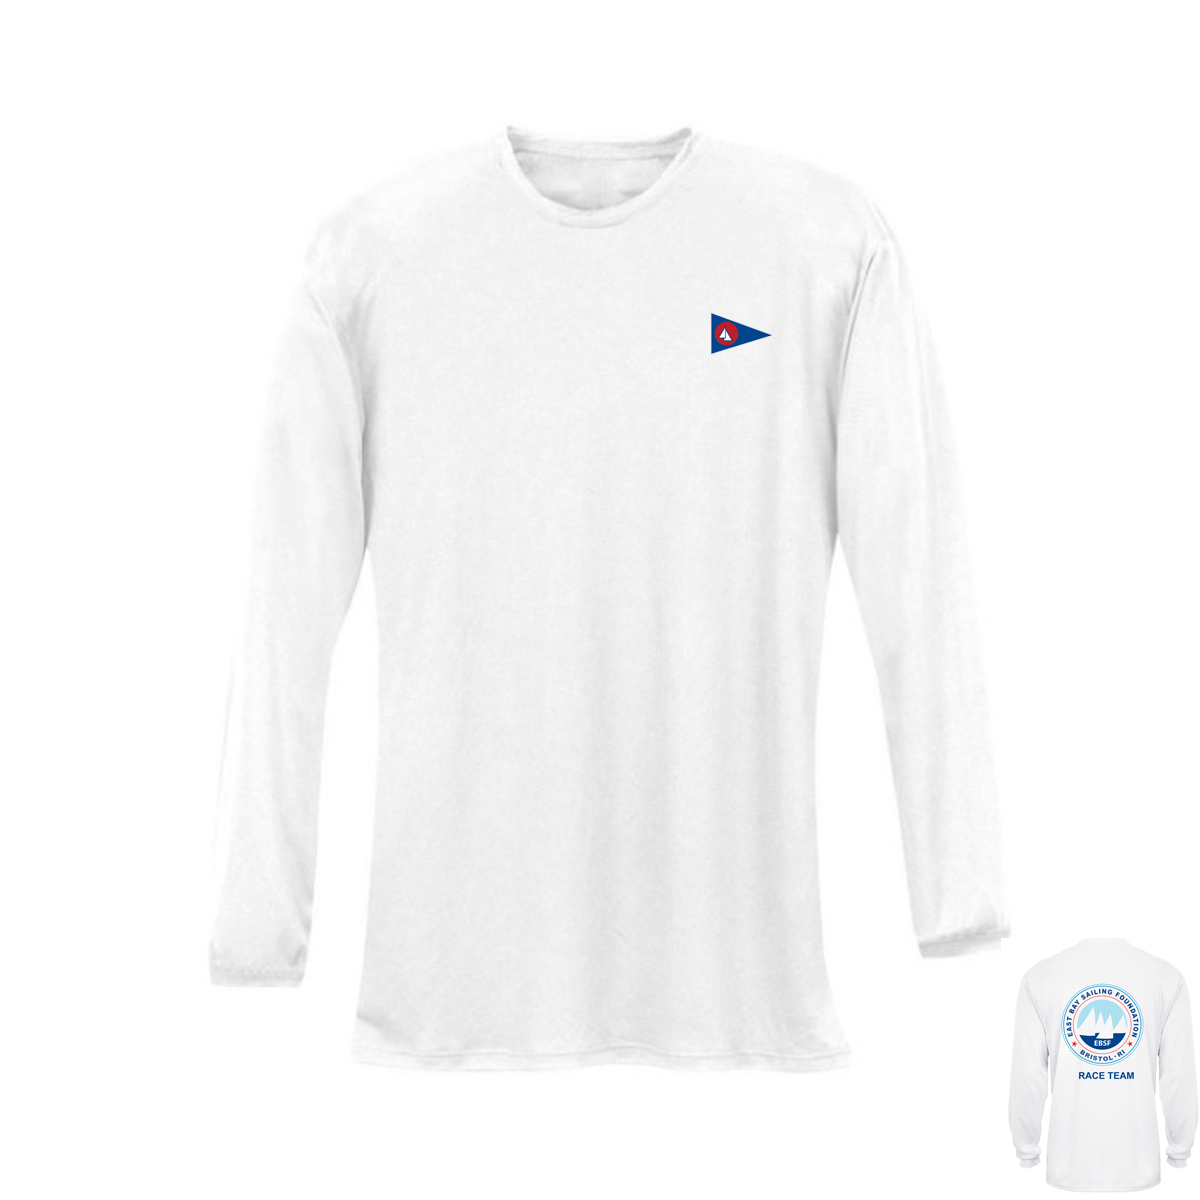 EBSF - Women's RACE TEAM L/S TECH TEE